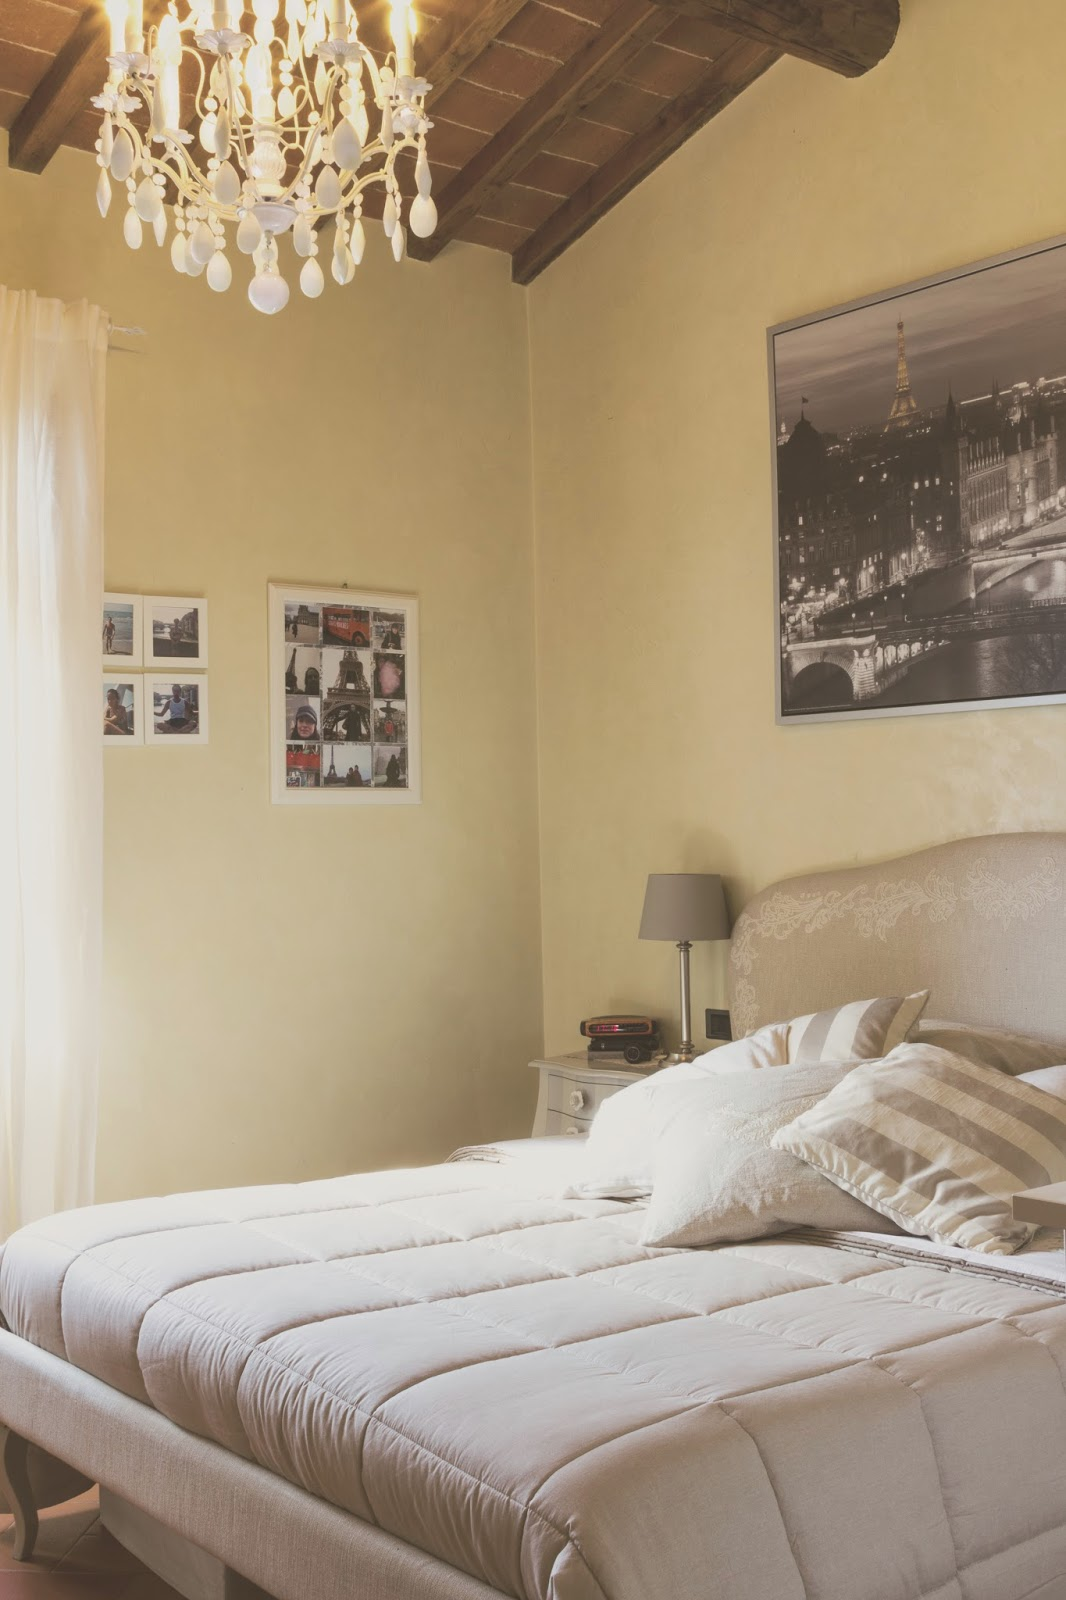 Elena Tee: Room Tour: La mia Camera da Letto